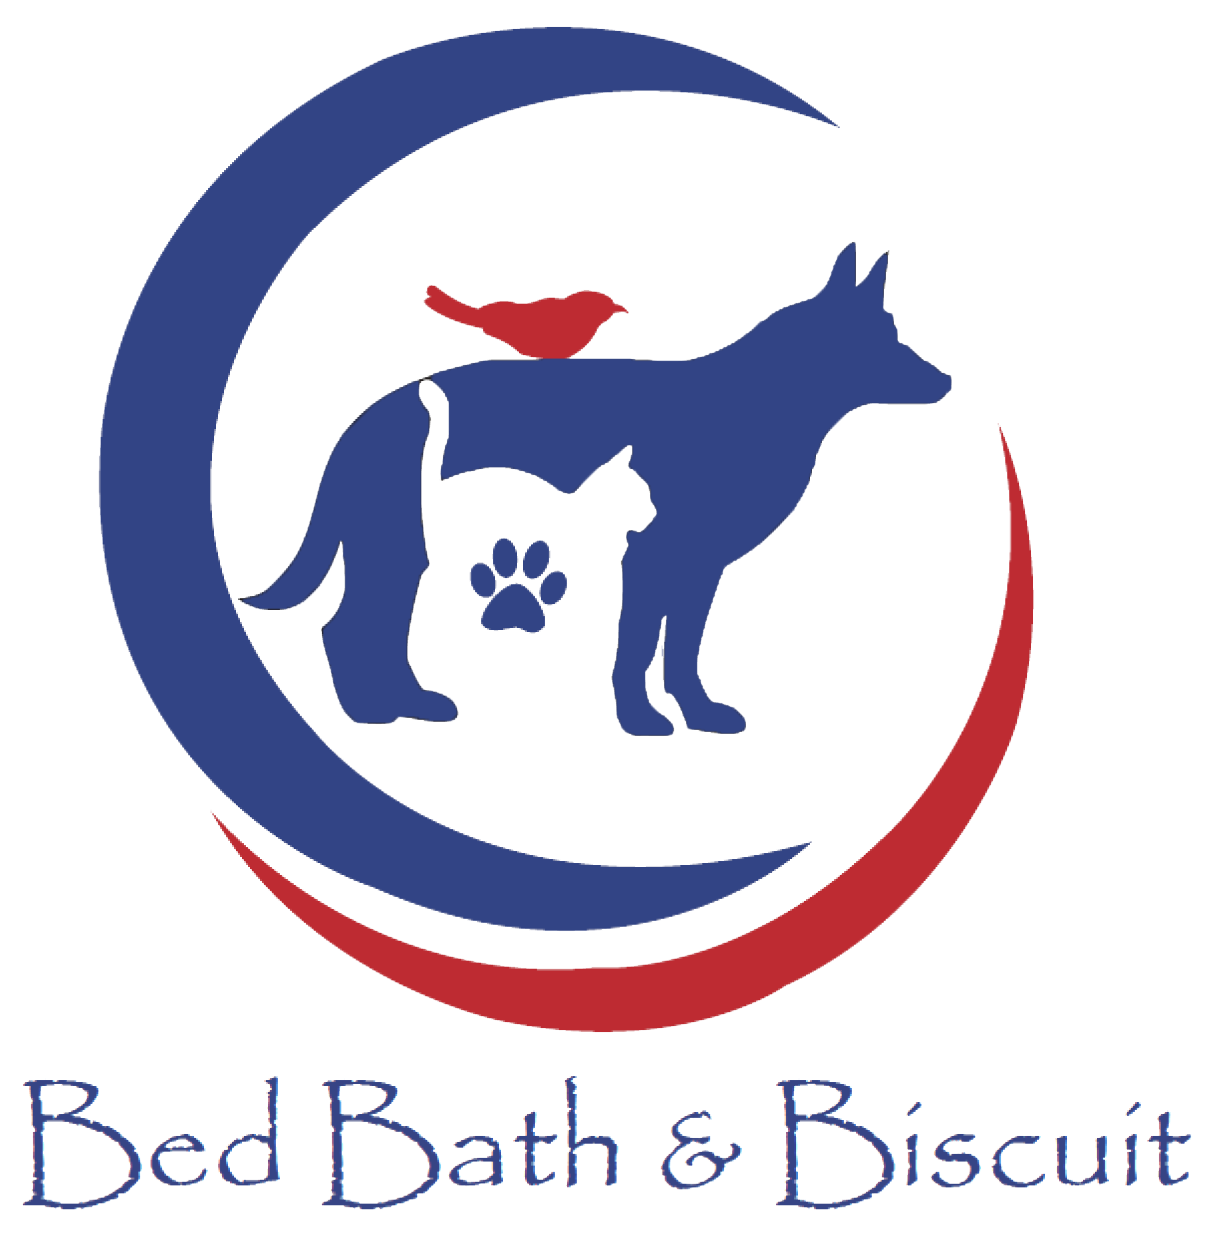 Bed Bath & Biscuit